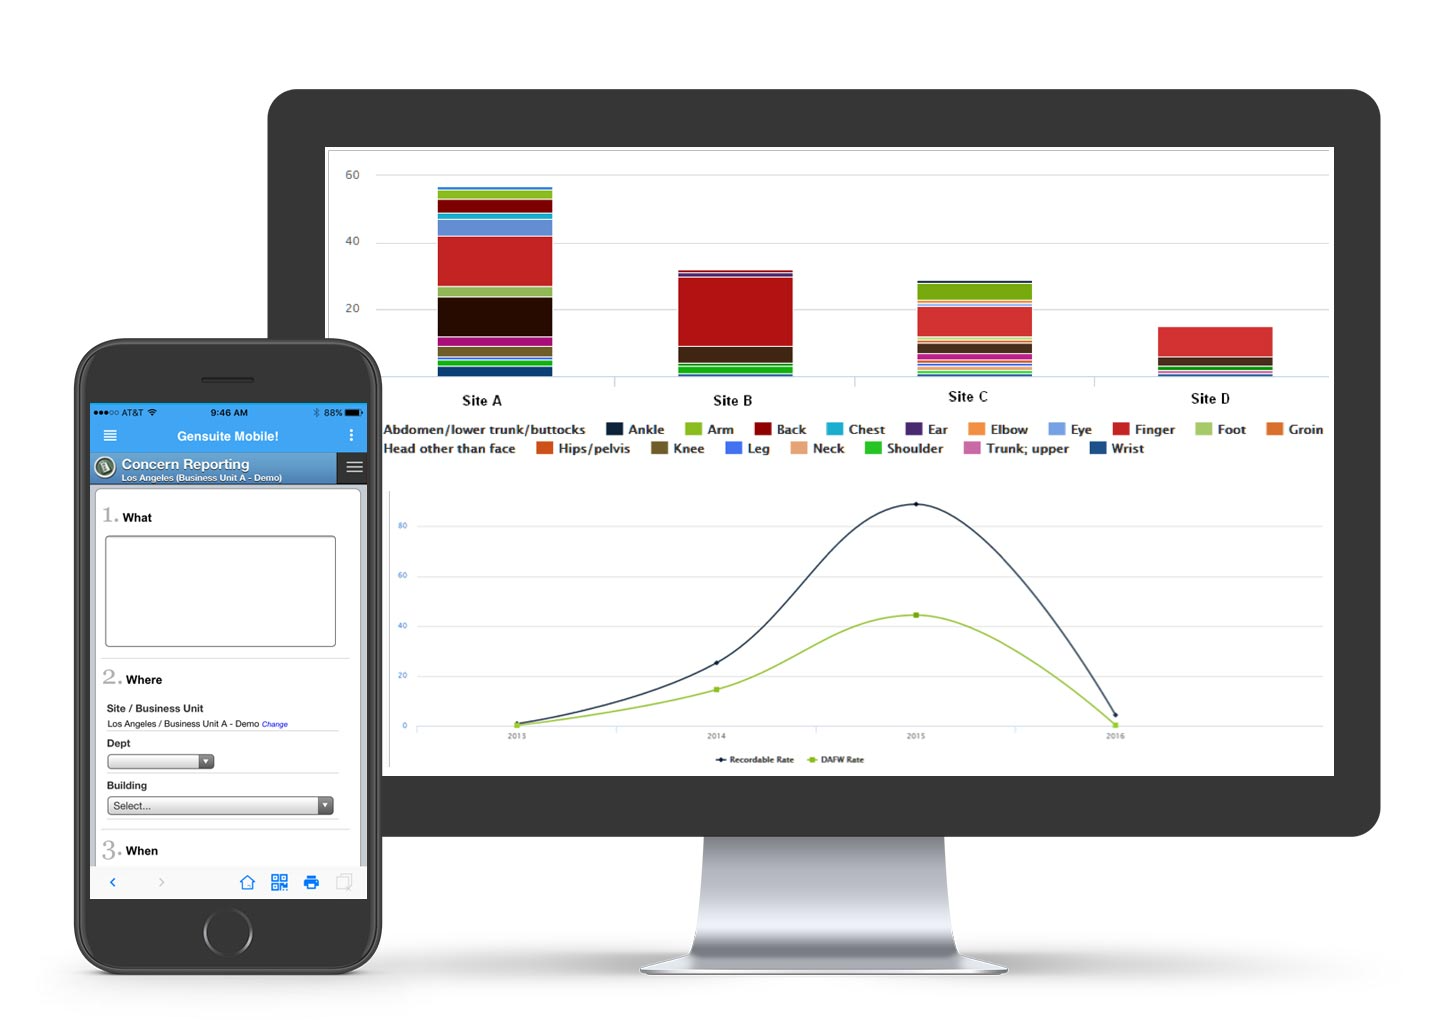 Application specific data mining, reporting and charting tools; out-of-the-box software solution. Integrated dashboards across applications personalized by user and by organization scope; custom layout options; automated email subscriptions etc.